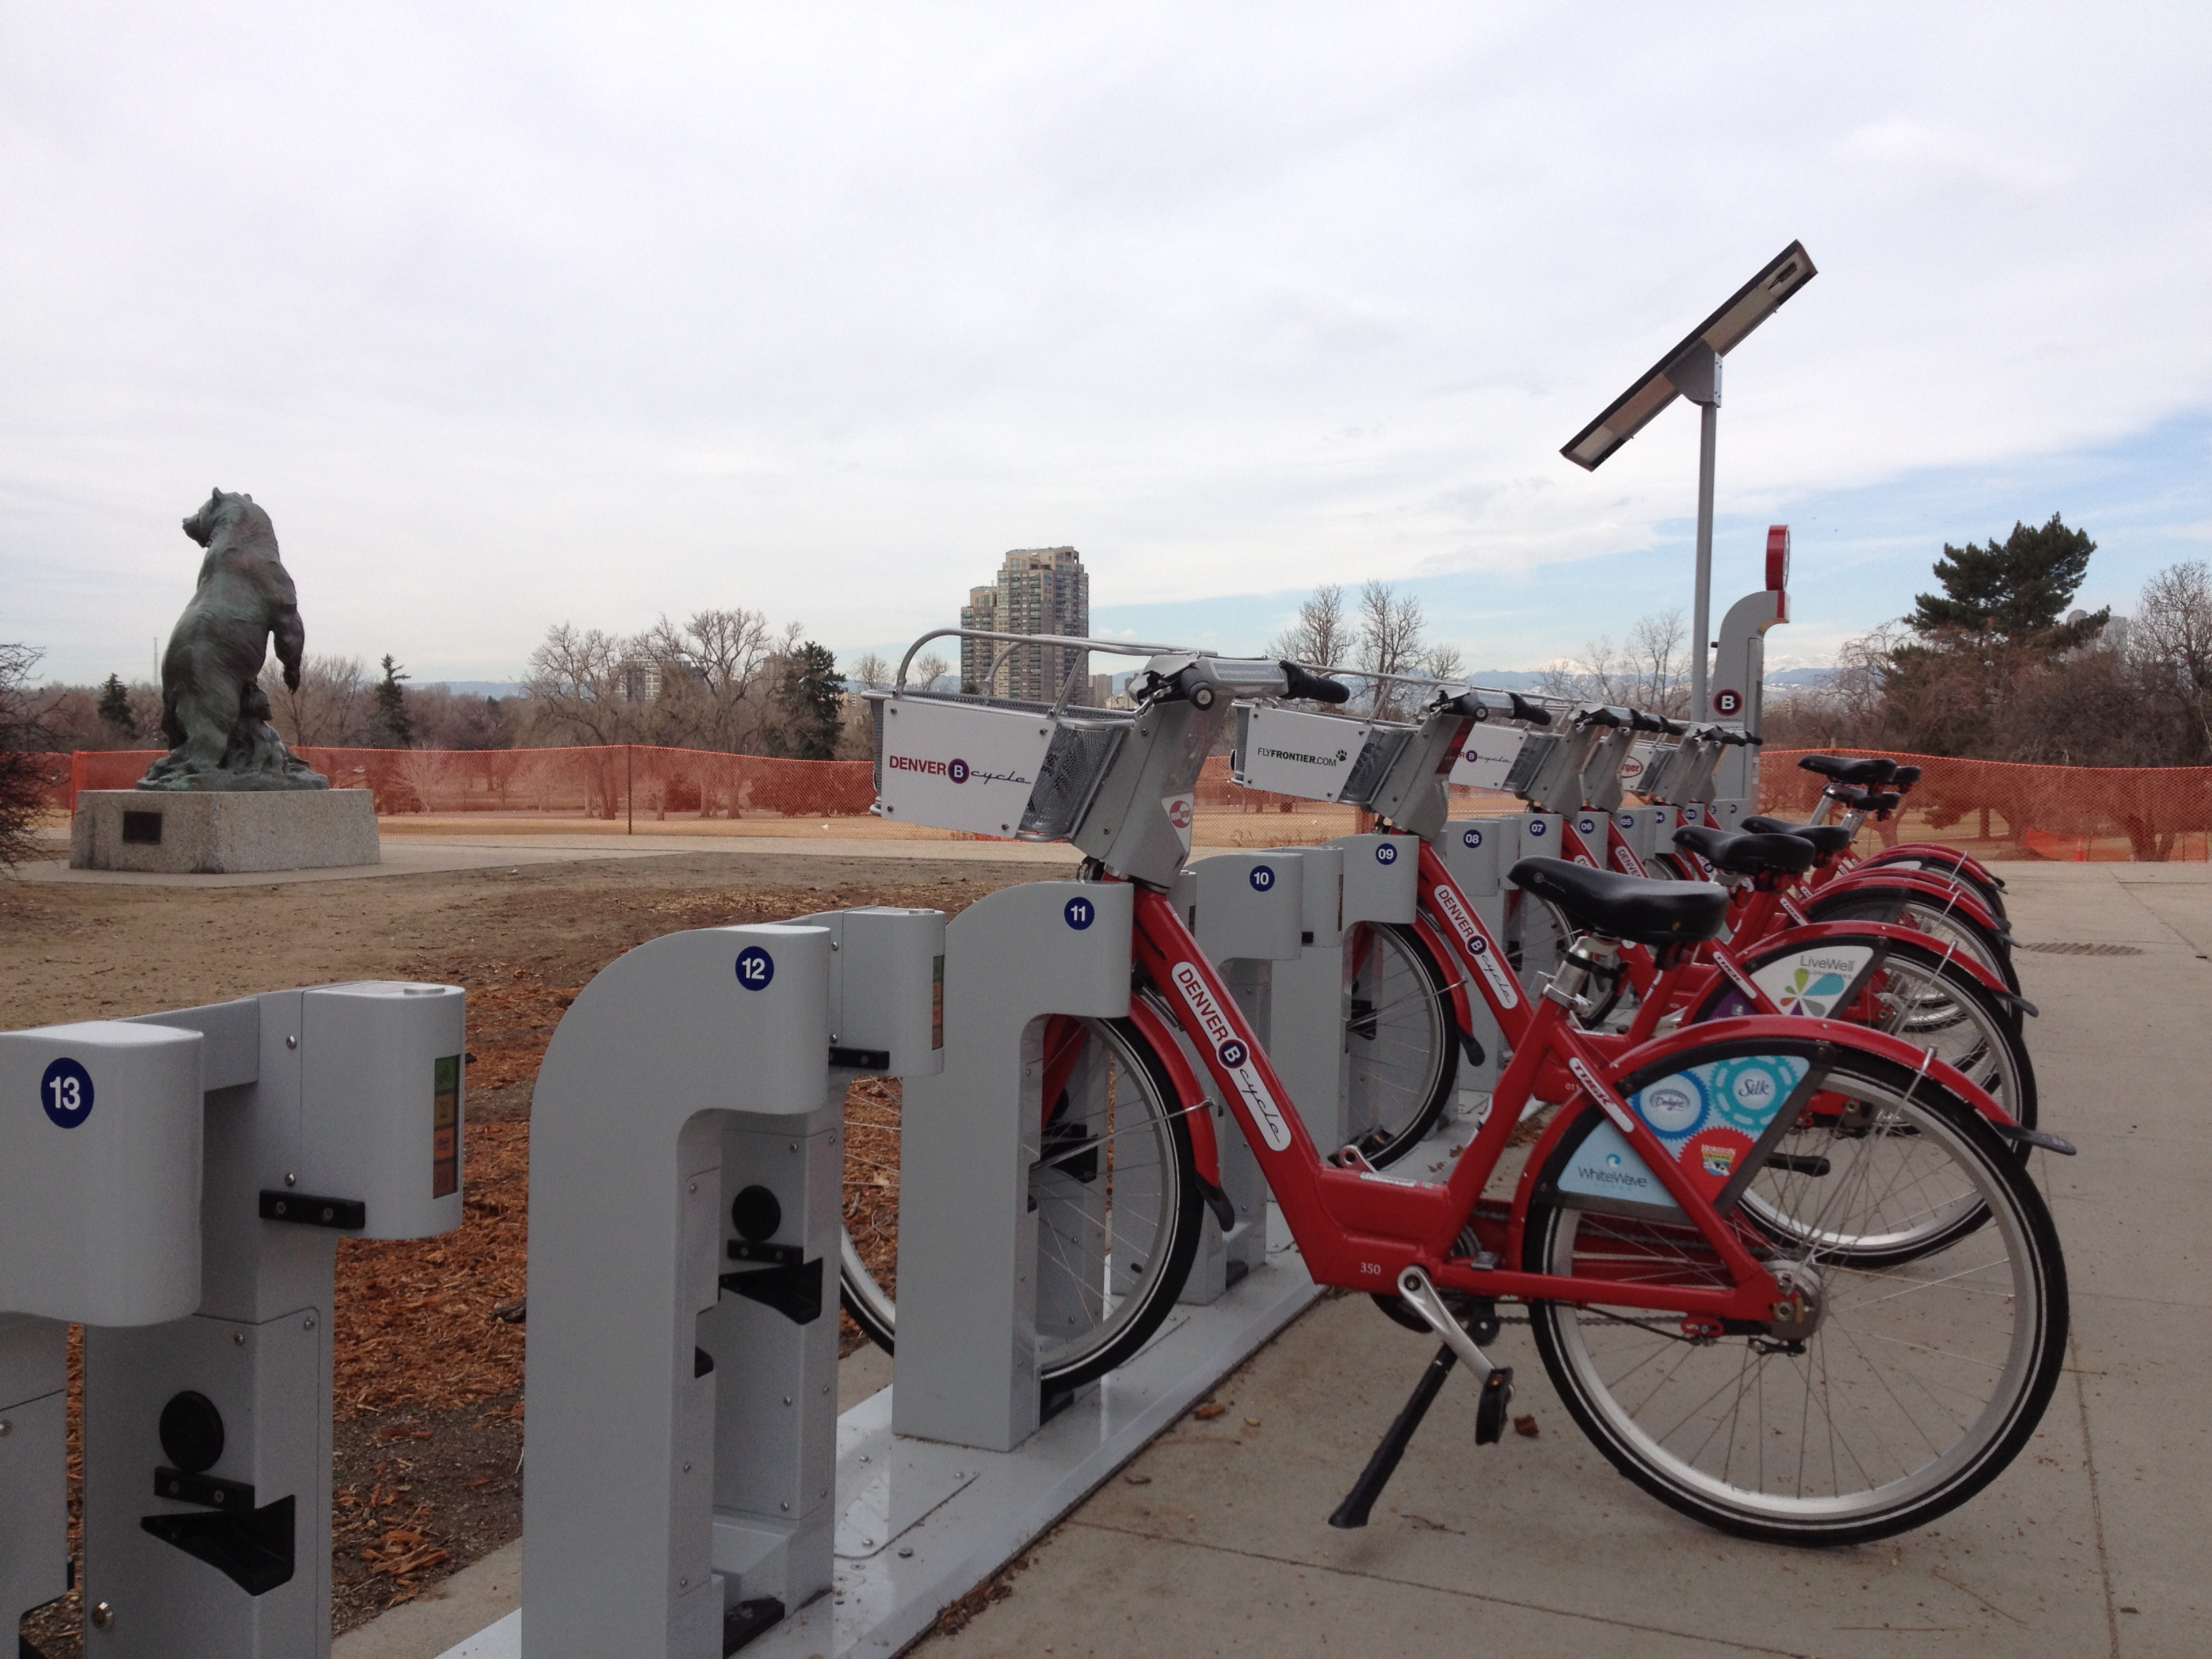 Denver B-Cycle Bike Share Program